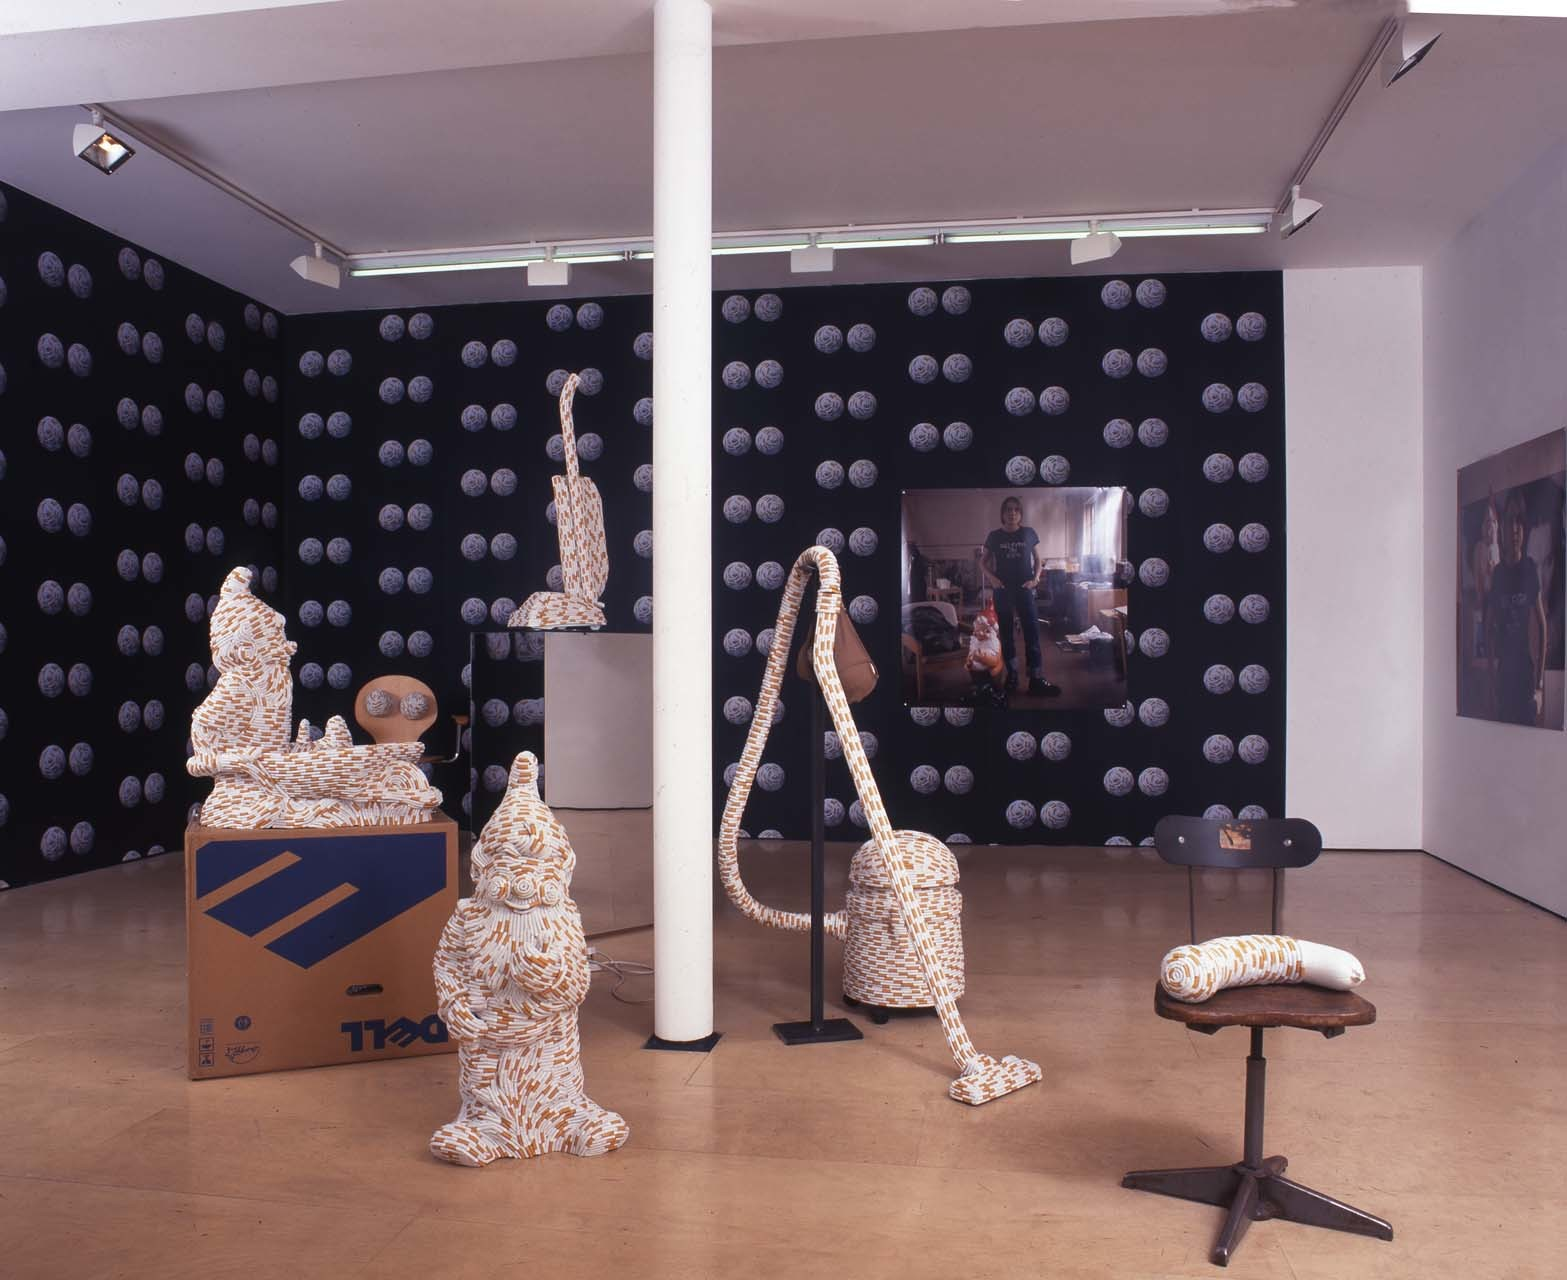 "<div class=""artwork_caption""><p>Installation View, 2000</p></div>"